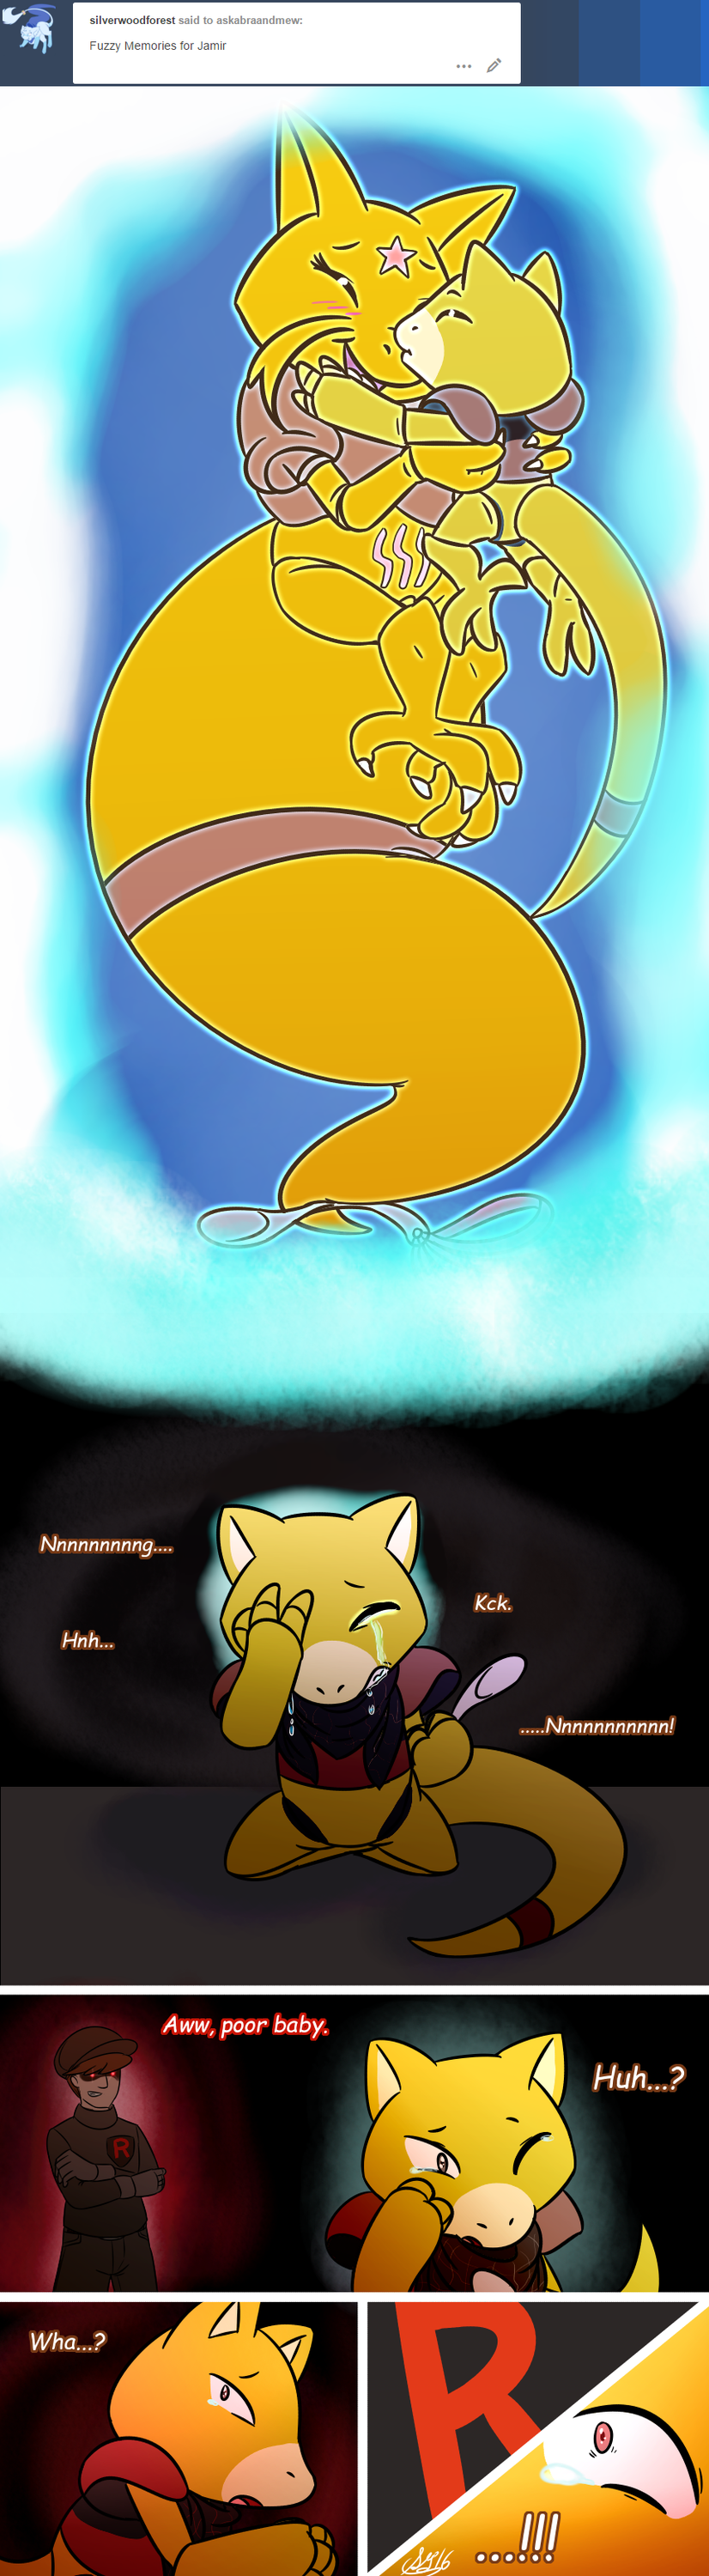 Ask Abra and Mew question #122